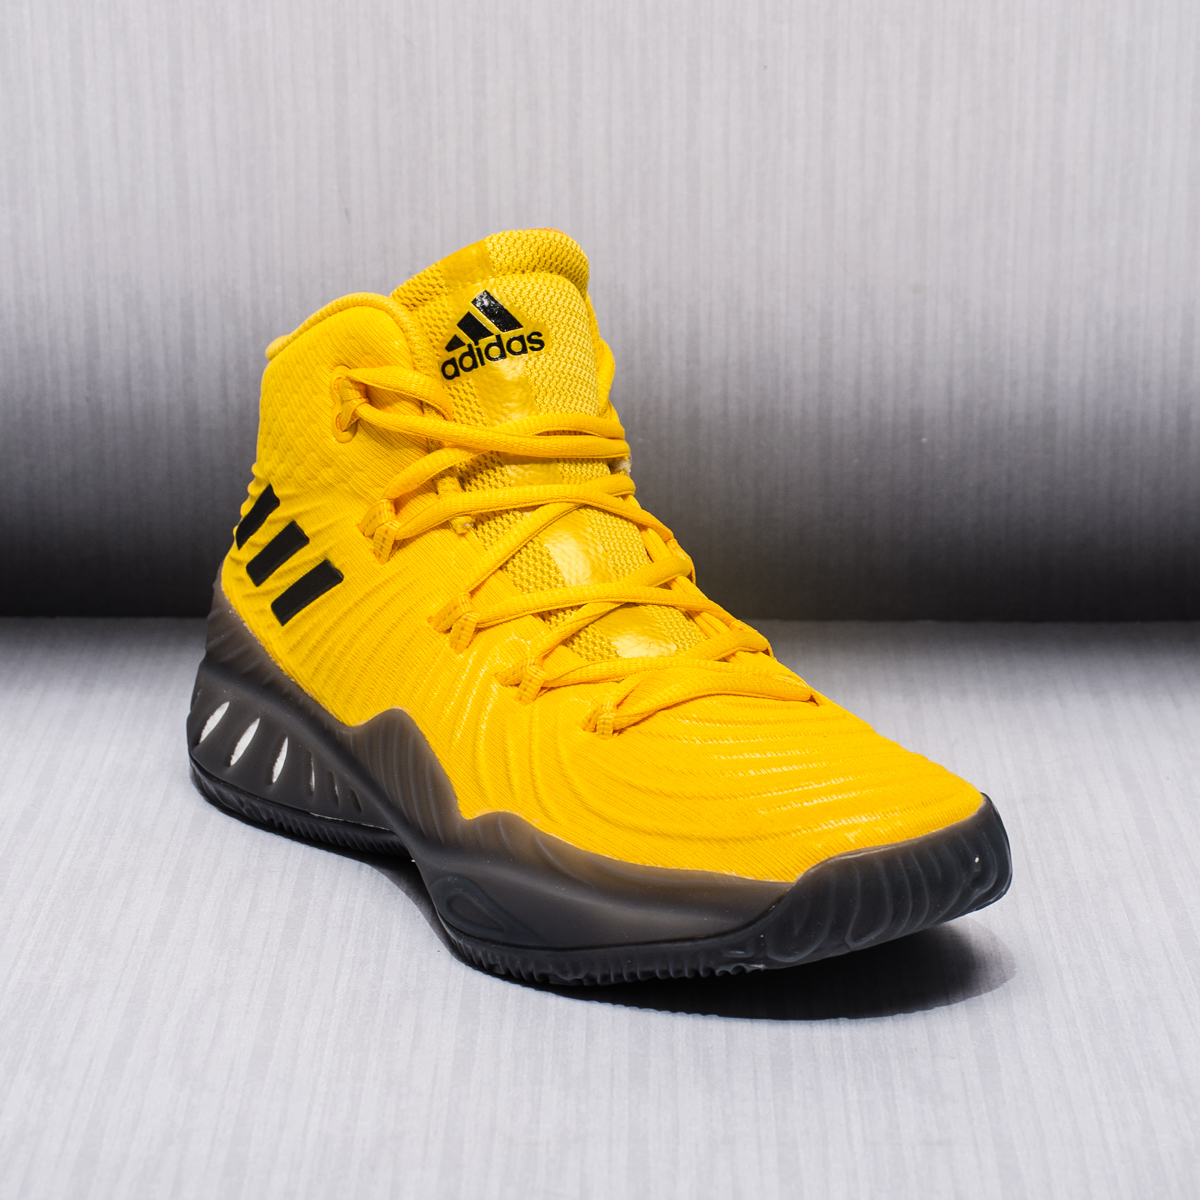 adidas Crazy Explosive 2017 - BASKETBALL SHOES Adidas ...